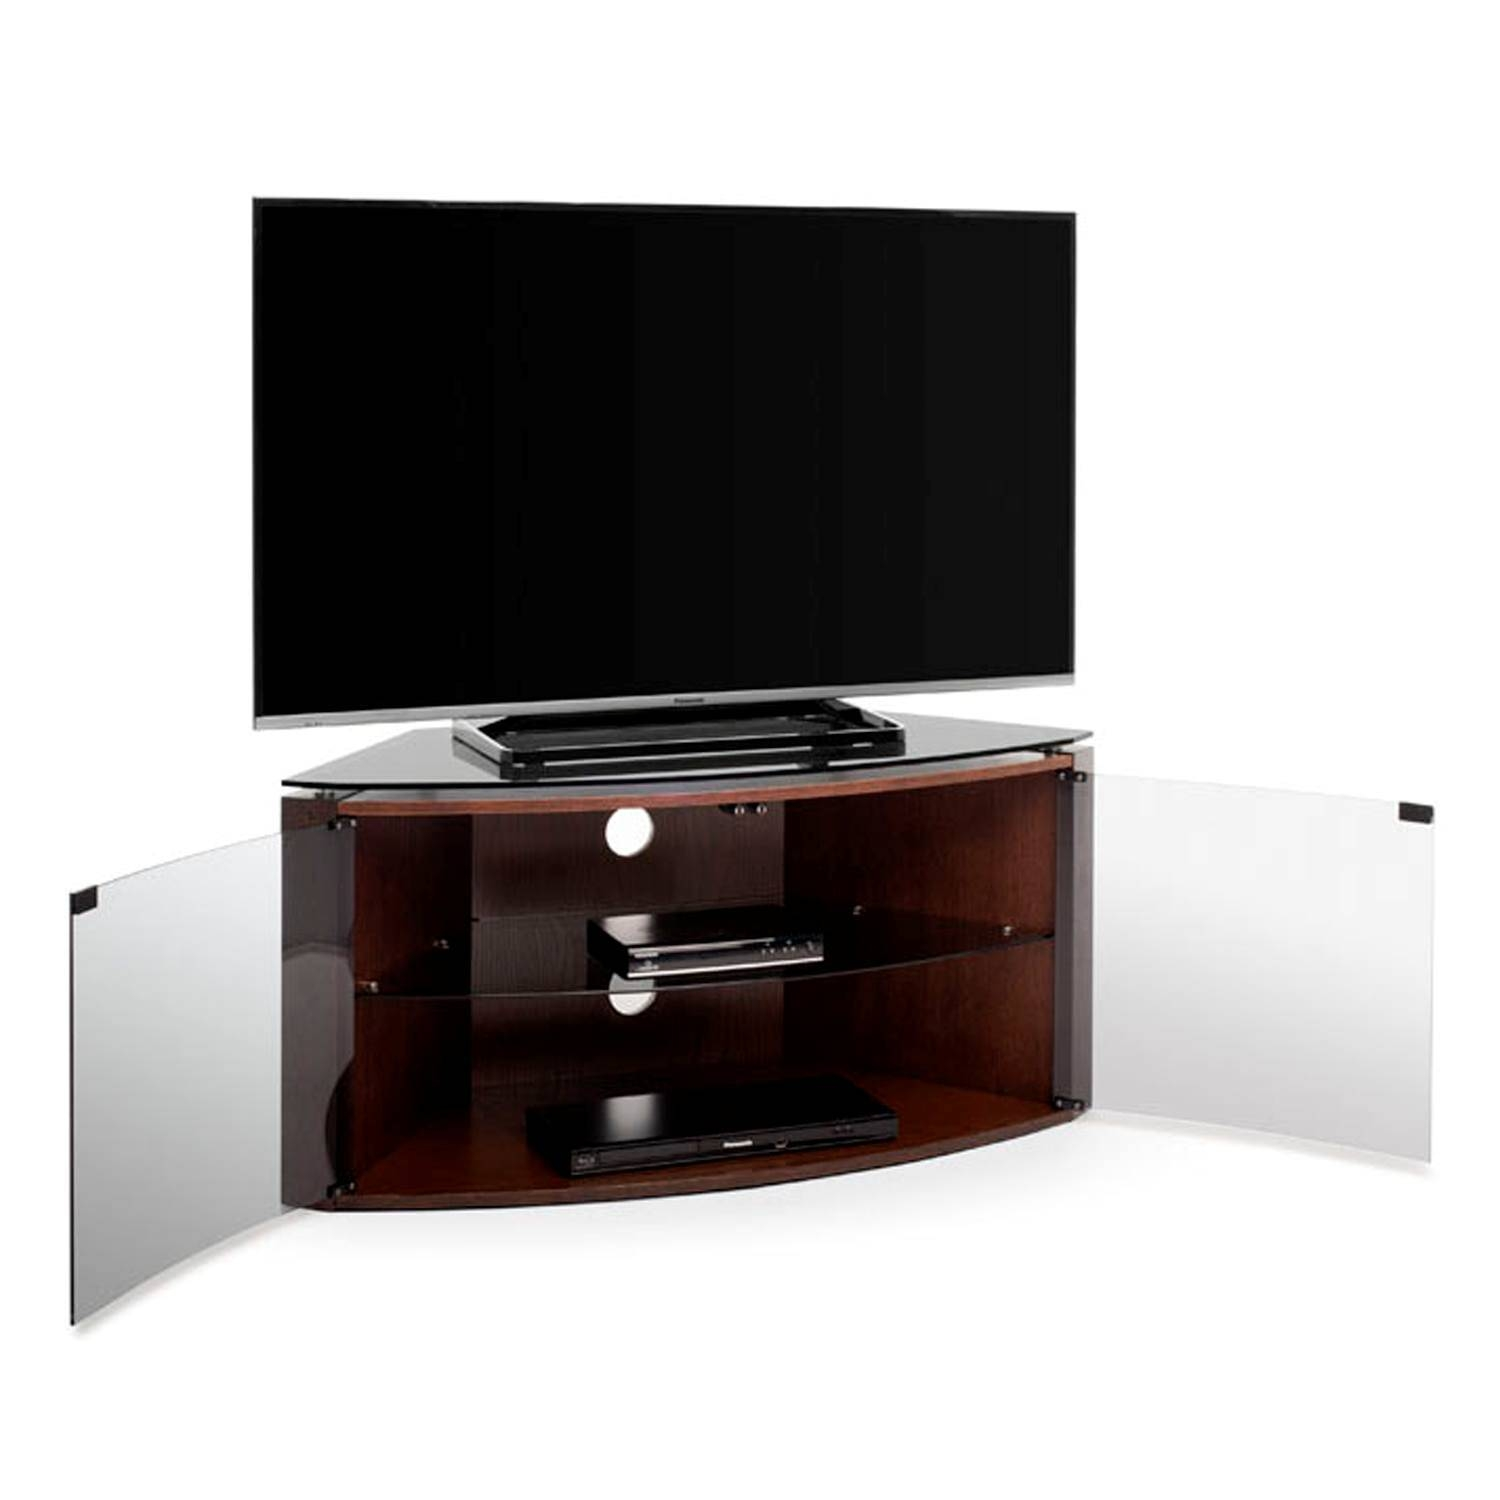 "Techlink Bench B6Do Dark Oak Corner Tv Stand For Up To 55"" Tvs with regard to Techlink Bench Corner Tv Stands (Image 5 of 15)"